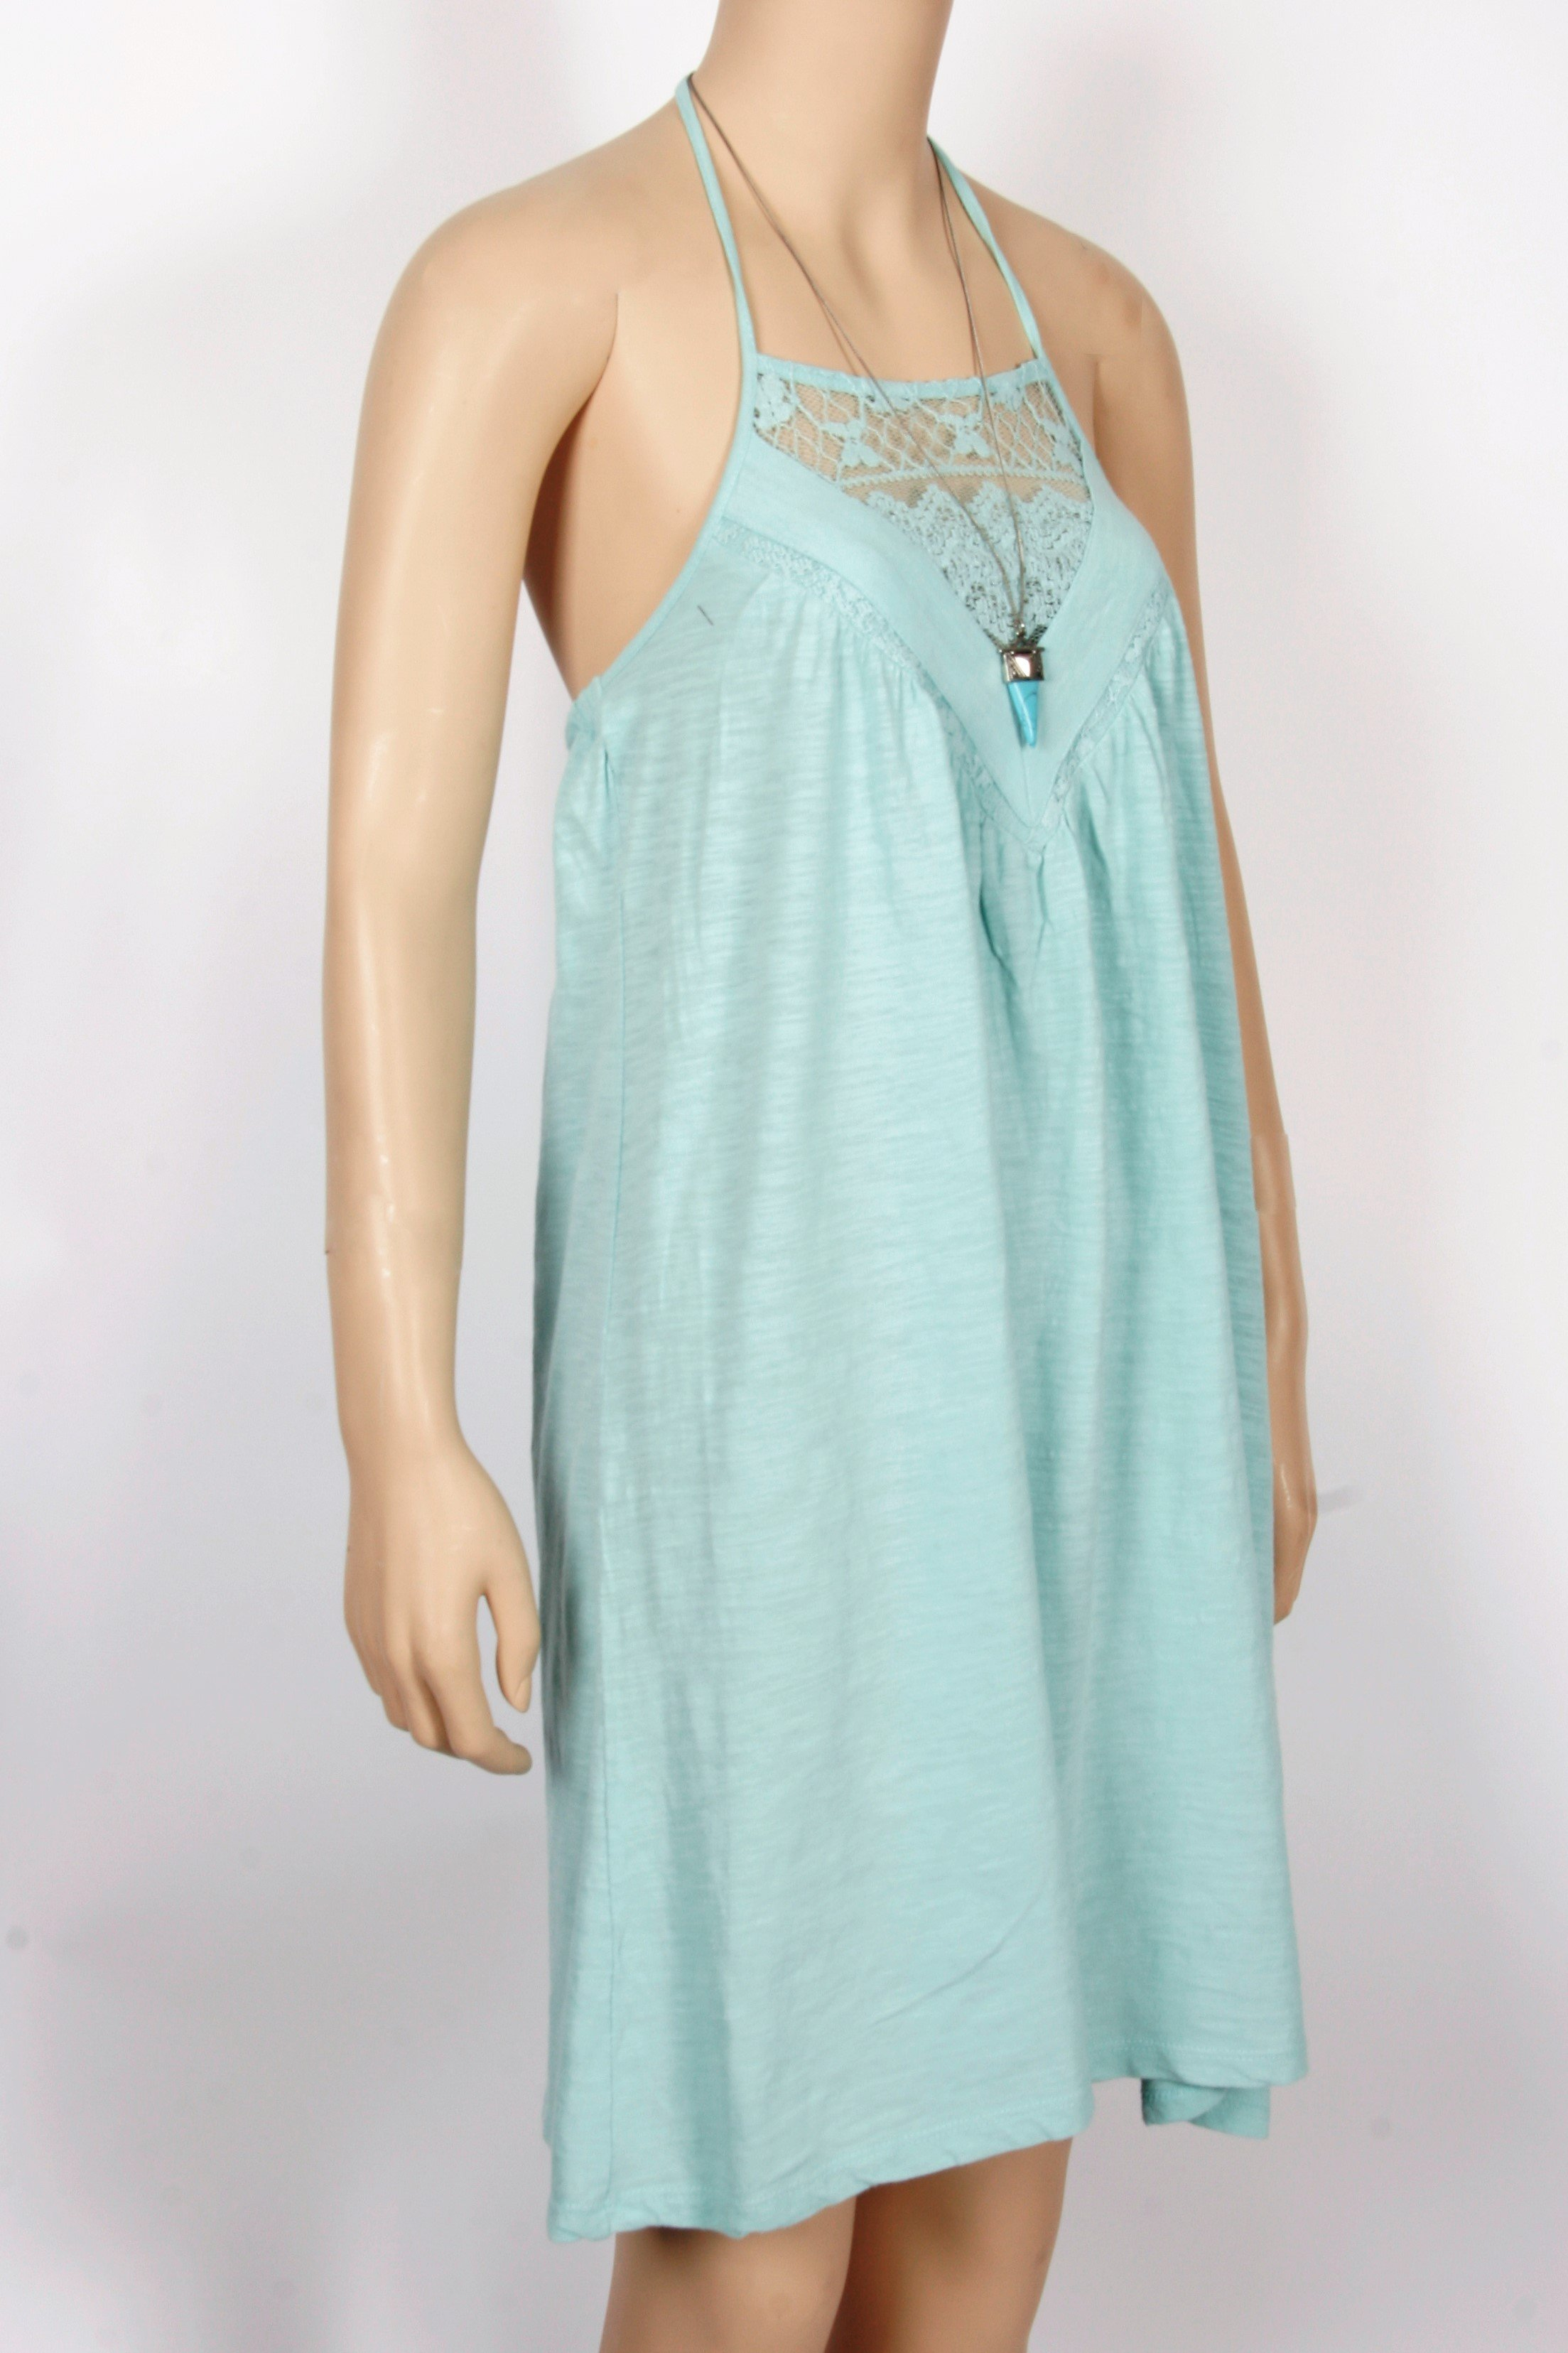 Roxy lace inset halter dresssize small in products pinterest